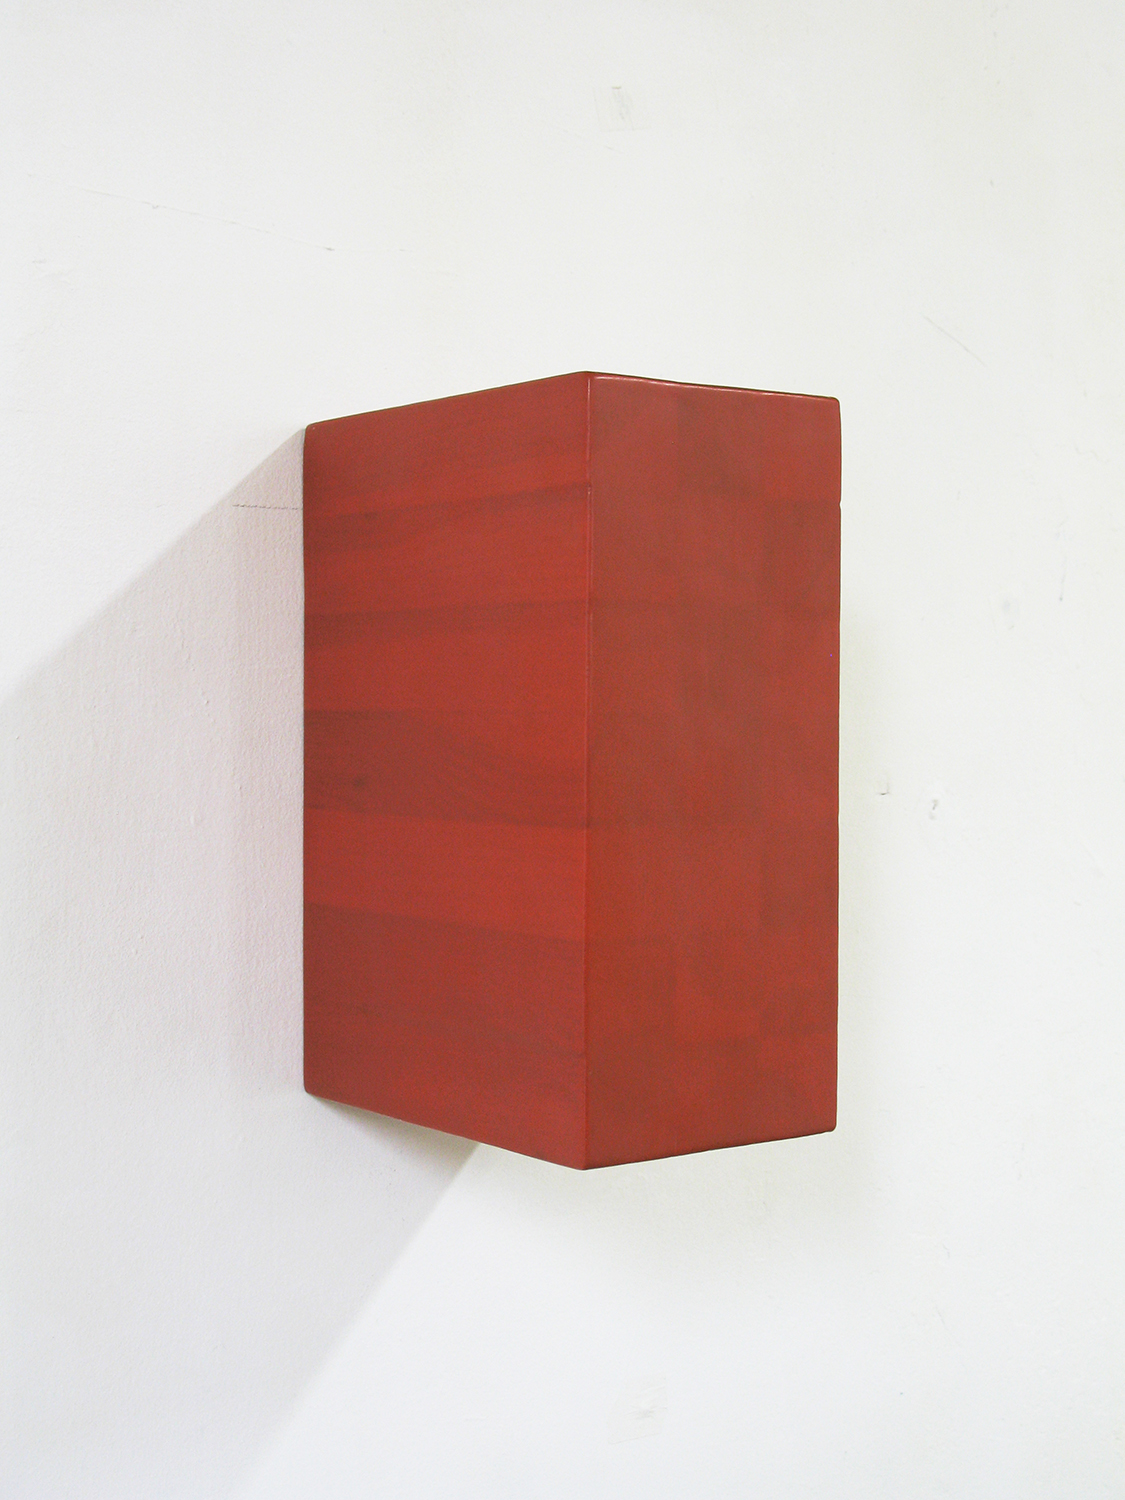 TS0005|Coloured resin on laminated soft wood|22.5 x 10 x 16 cm|2000